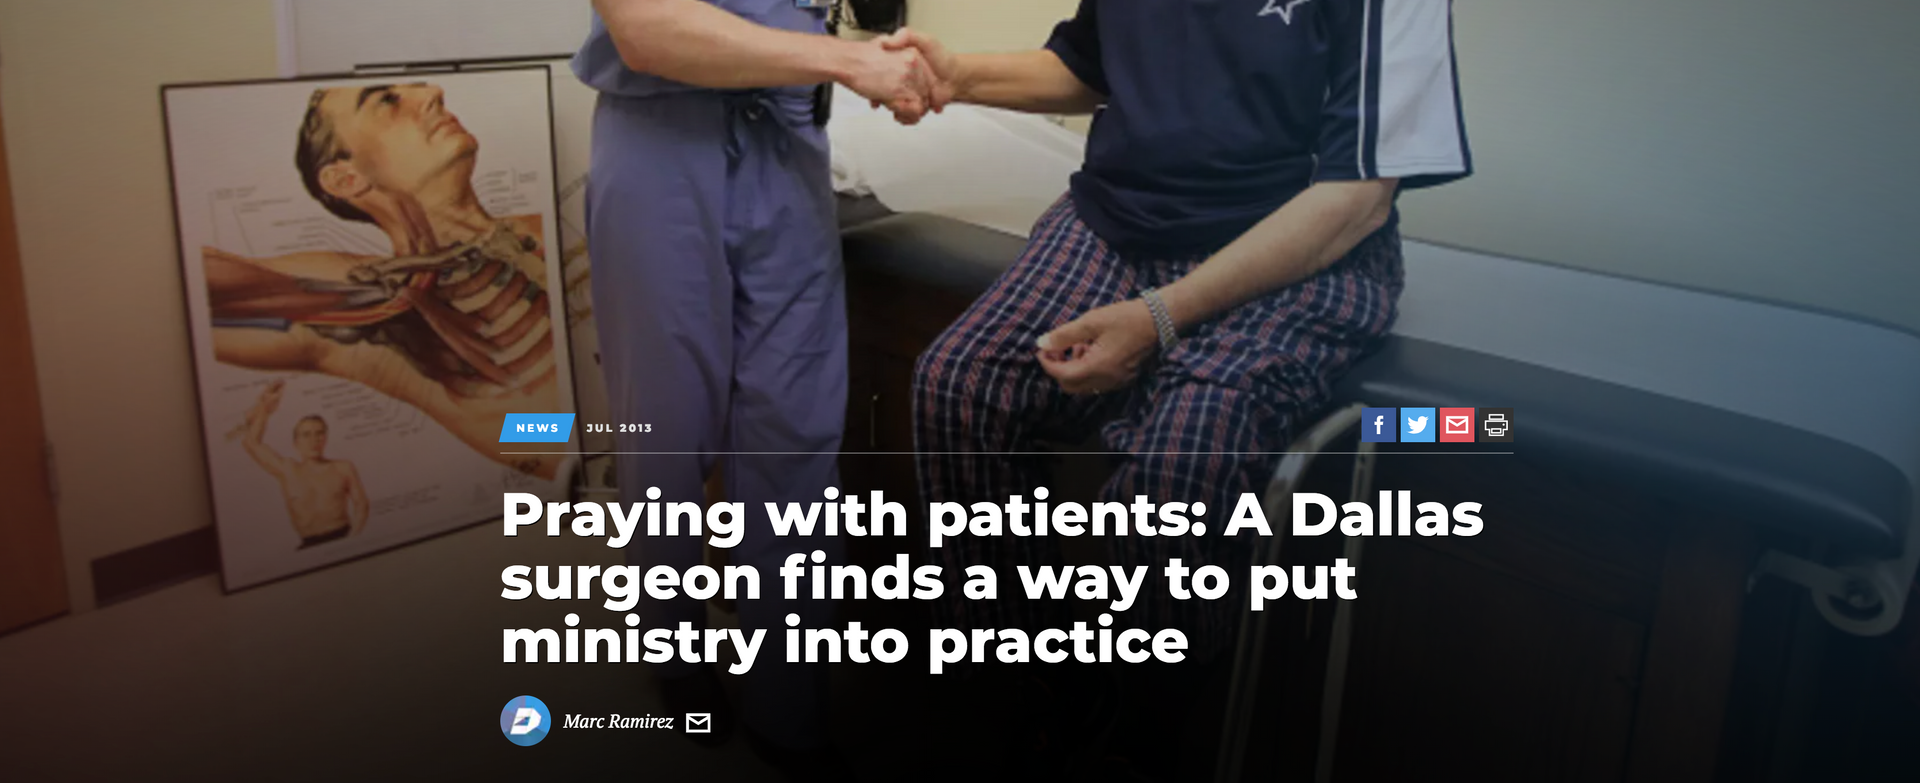 Dallas Morning News article about praying with patients